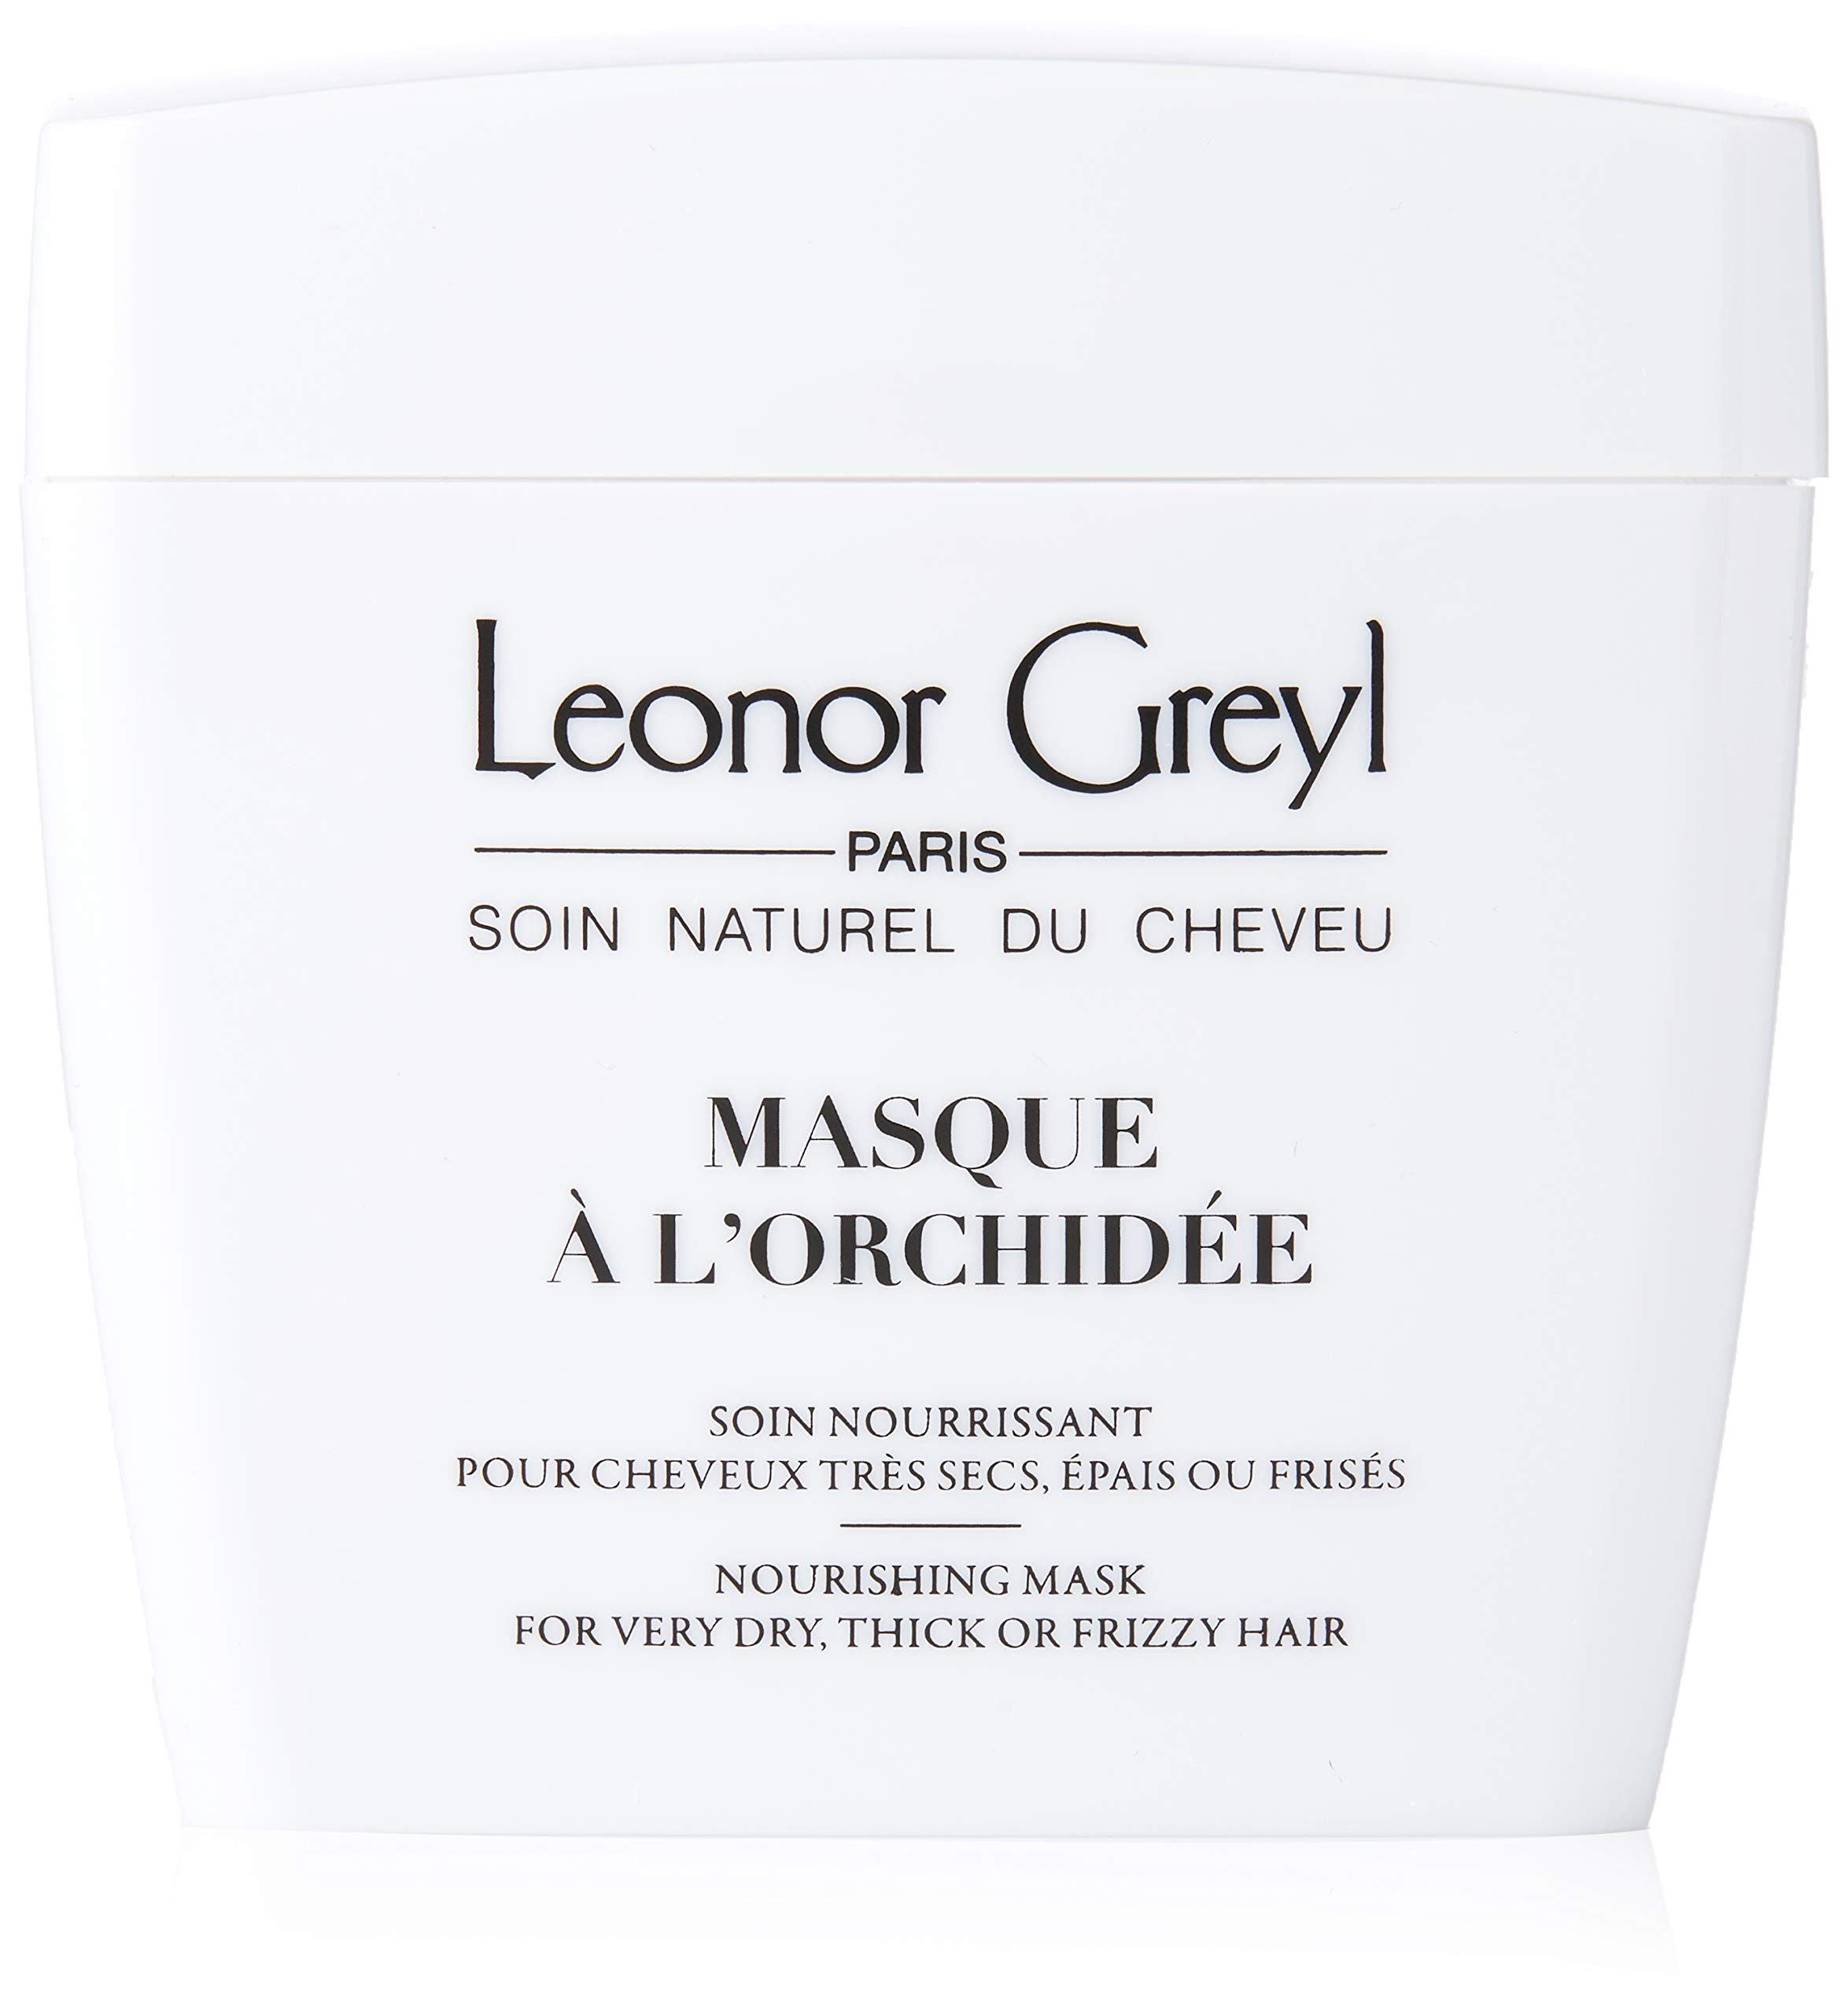 Leonor Greyl Paris Masque A L'Orchidee - Deep Conditioning Mask for Dry, Thick or Frizzy Hair, 7 oz.